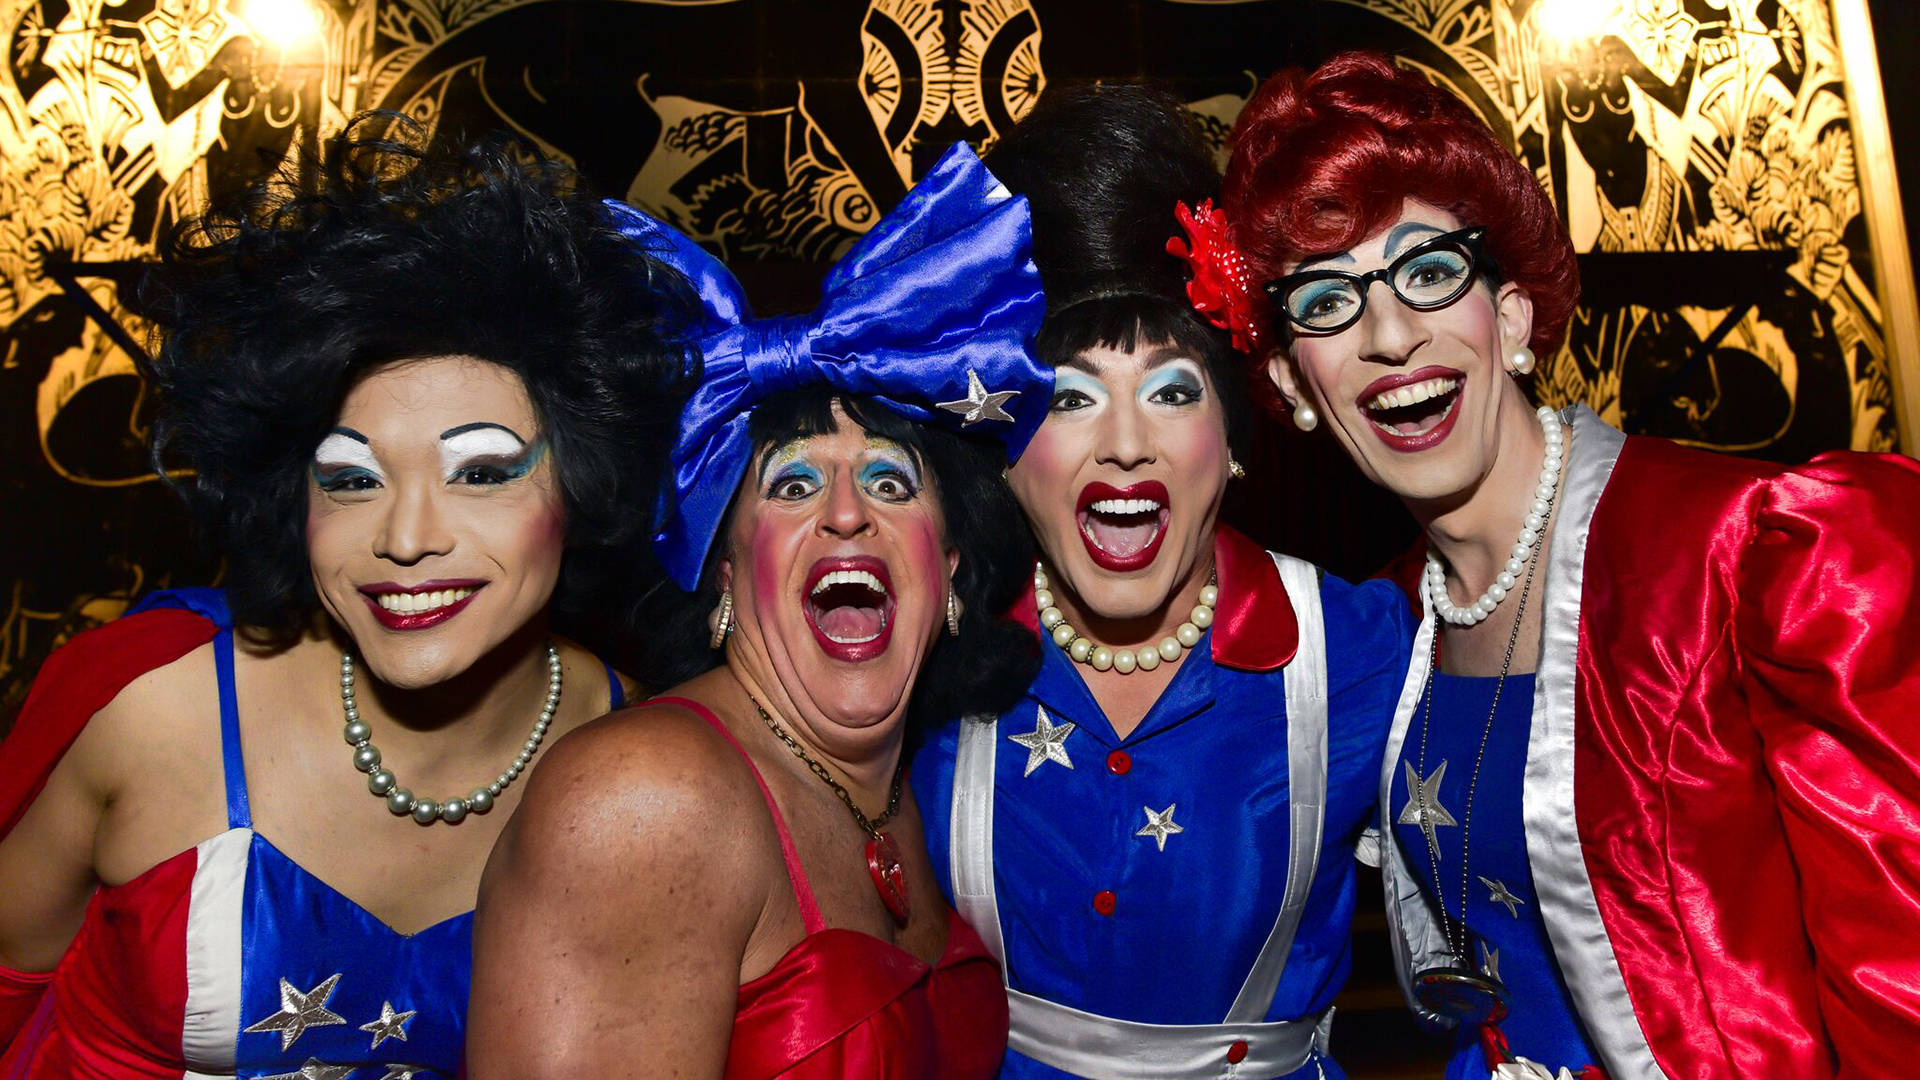 The Kinsey Sicks embrace the role of drag queens as irreverent truth-tellers in their latest show, 'Things You Shouldn't Say.' Trentino Priori